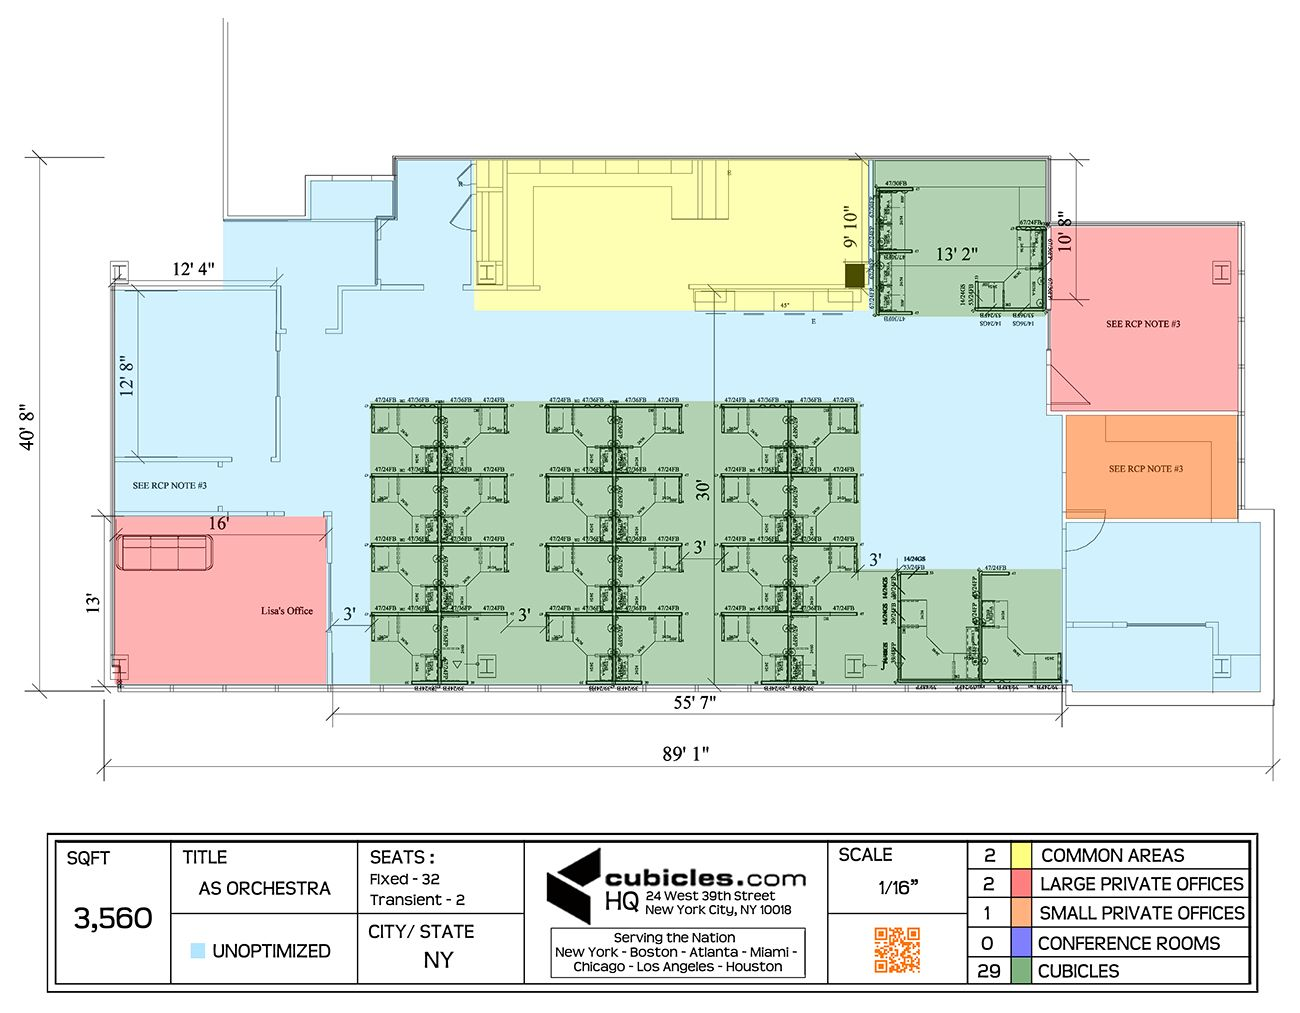 office layout floor plan. Office Layout Plan With 29 Cubicles For 32 People On SQFT 3,560. #officelayout Floor A